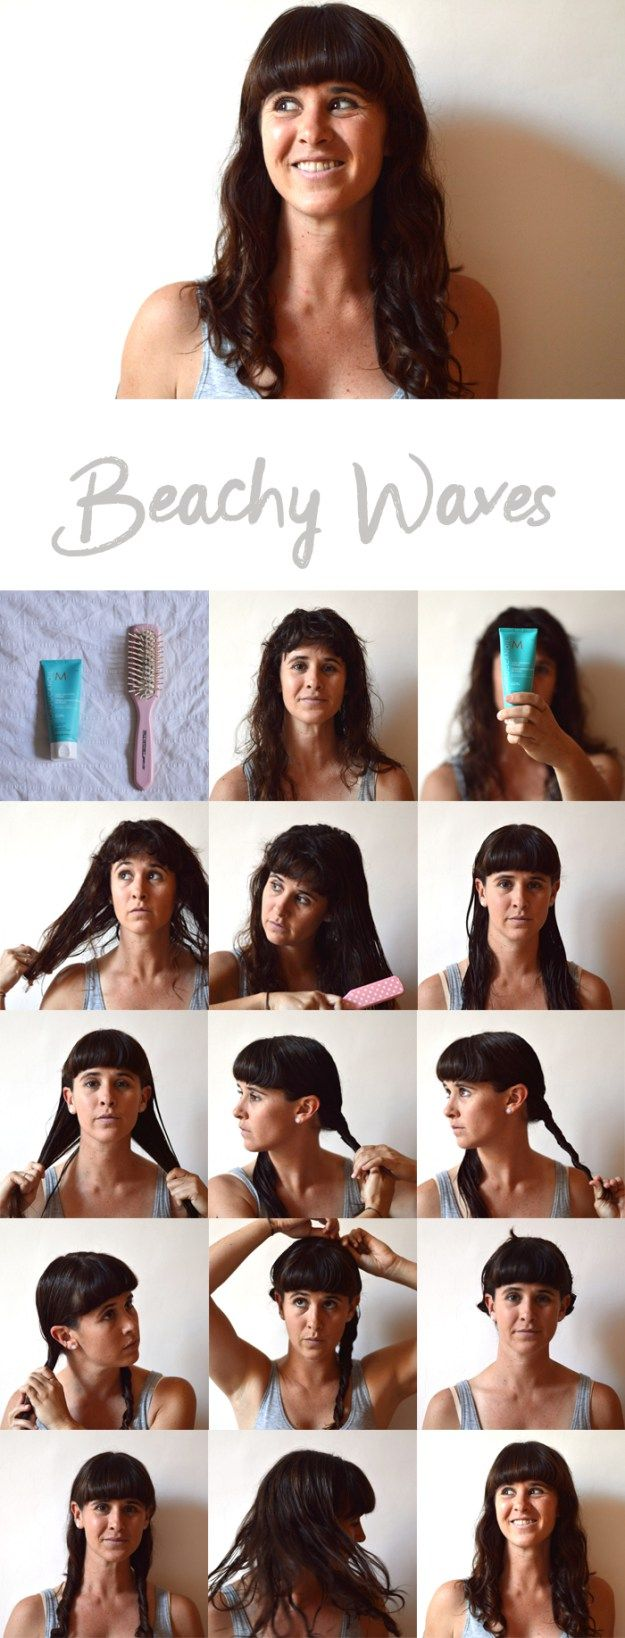 5 Easy and Awesome Travel Hair Styles | Travel hairstyles, Hair styles, Hair looks